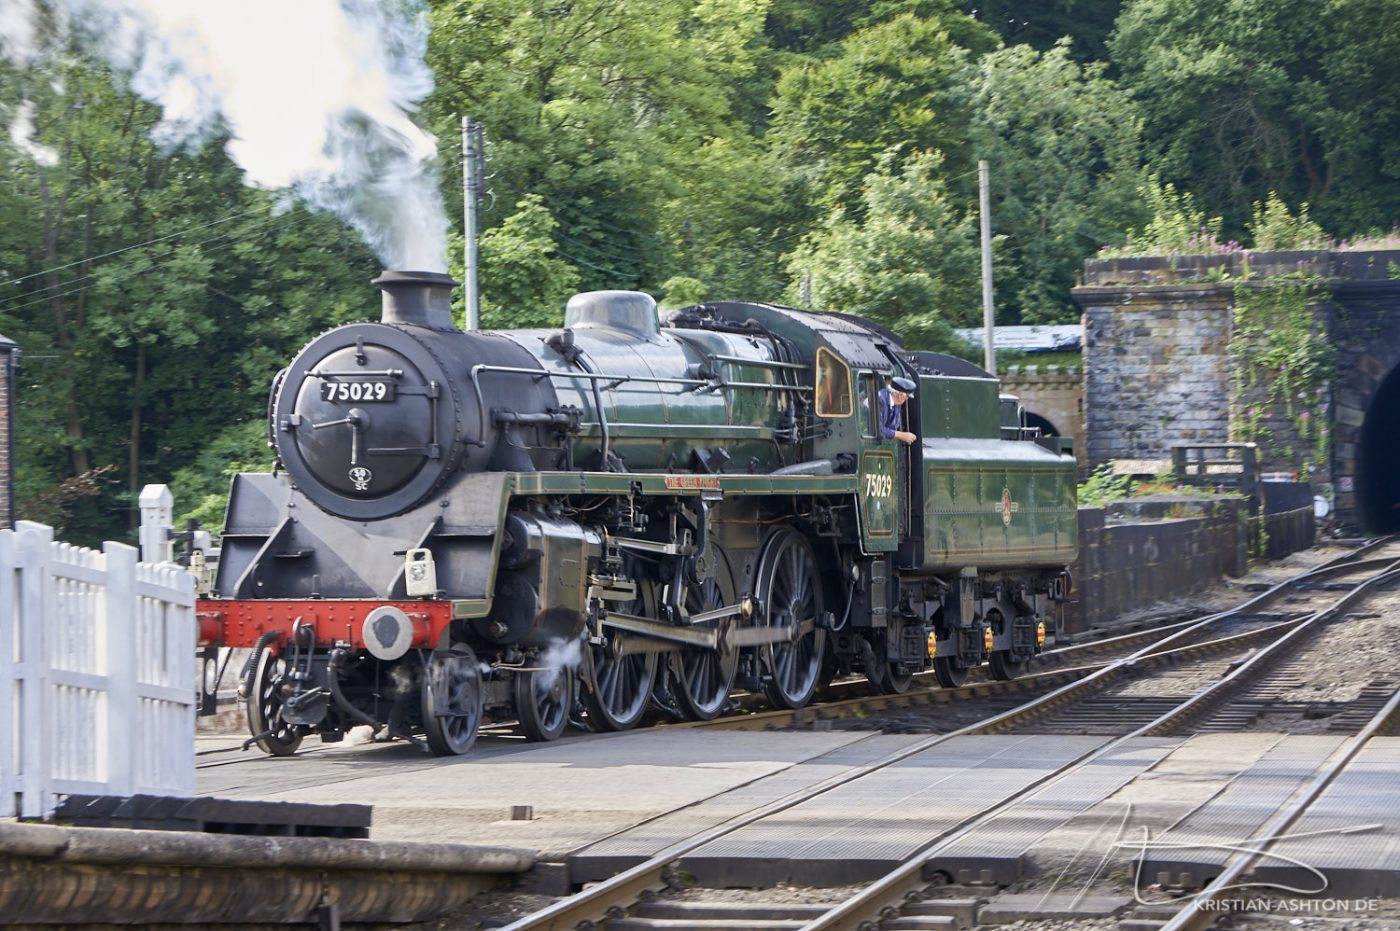 "Grosmont station - North Yorkshire Moors Railway - 4-6-0 steam loco No. 75029 ""The Green Knight"""